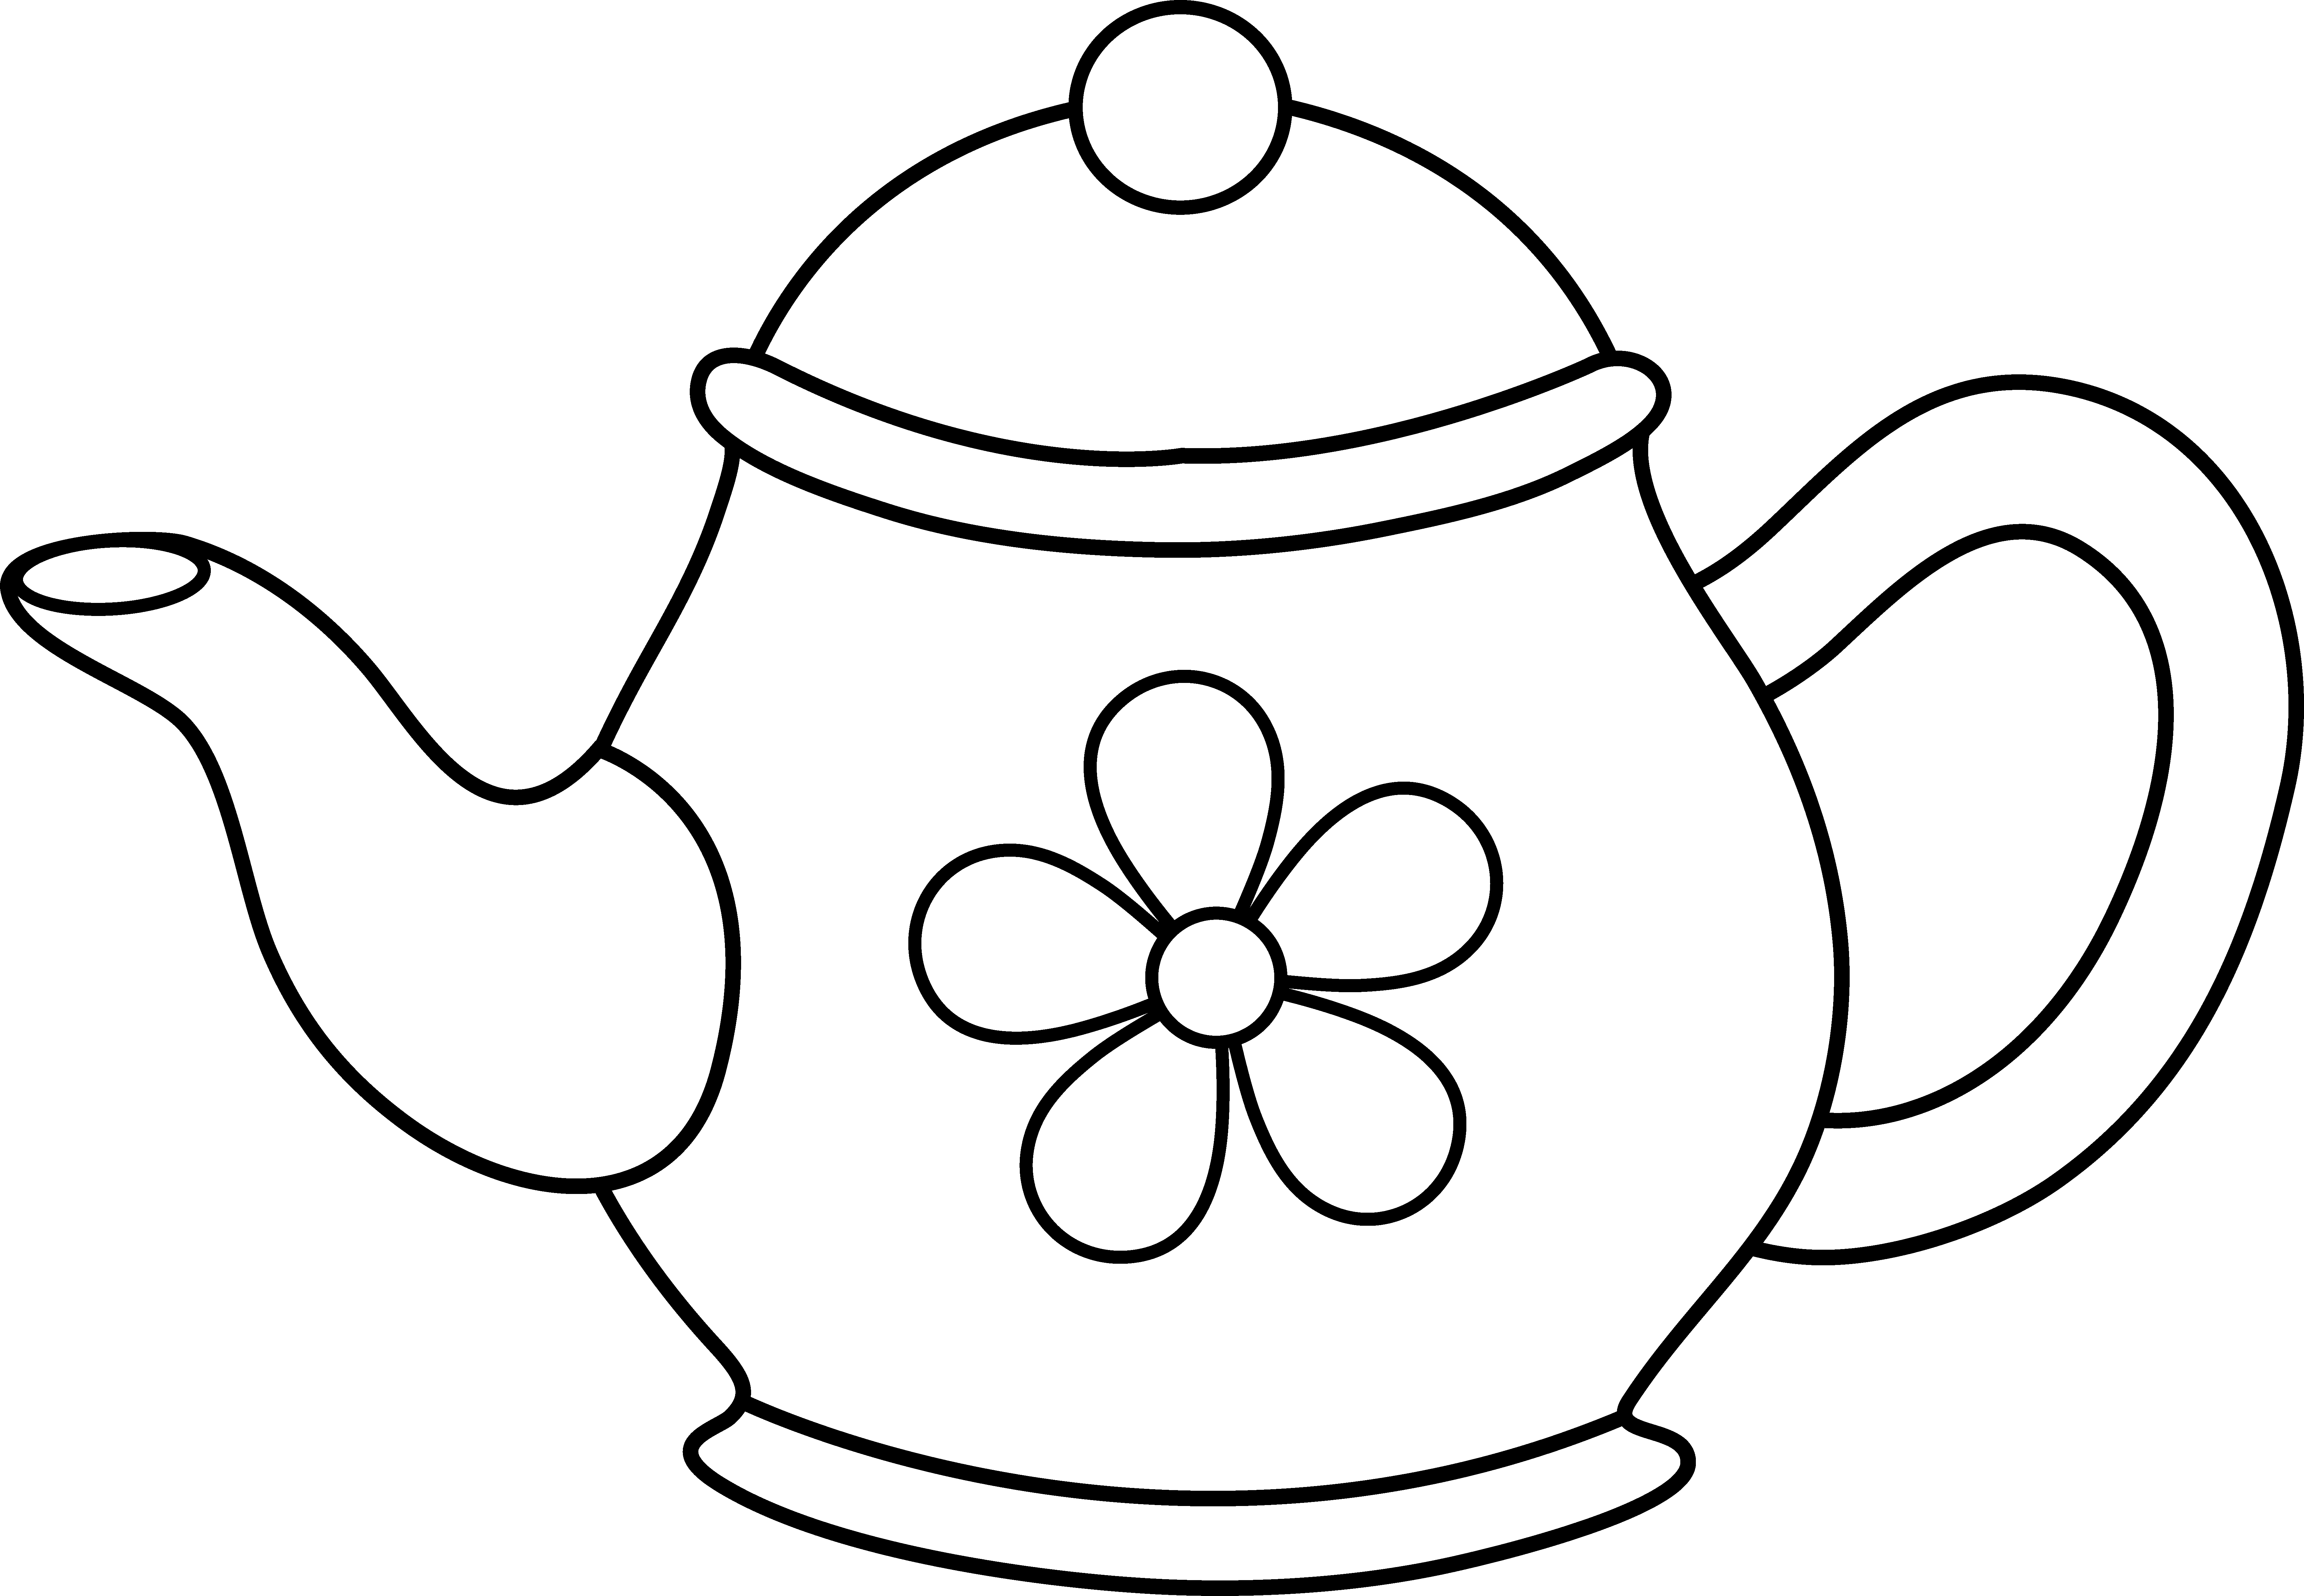 teapot colouring teapot coloring pages printable shelter teapot colouring